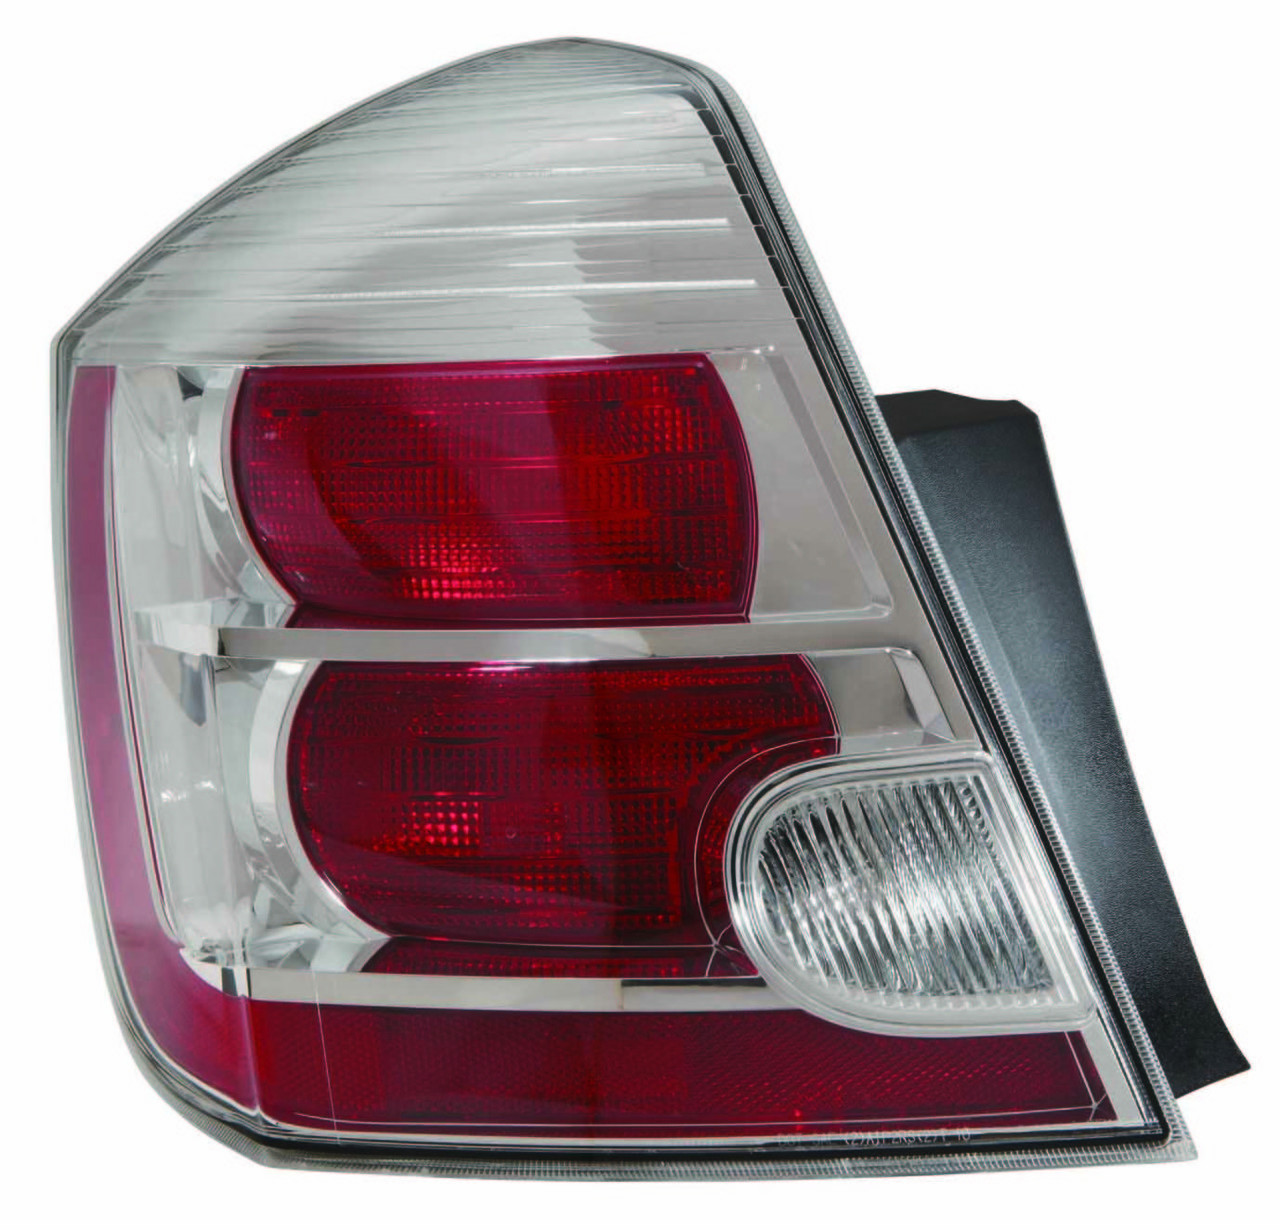 Nissan Sentra 2010 2011 2012 tail light left driver